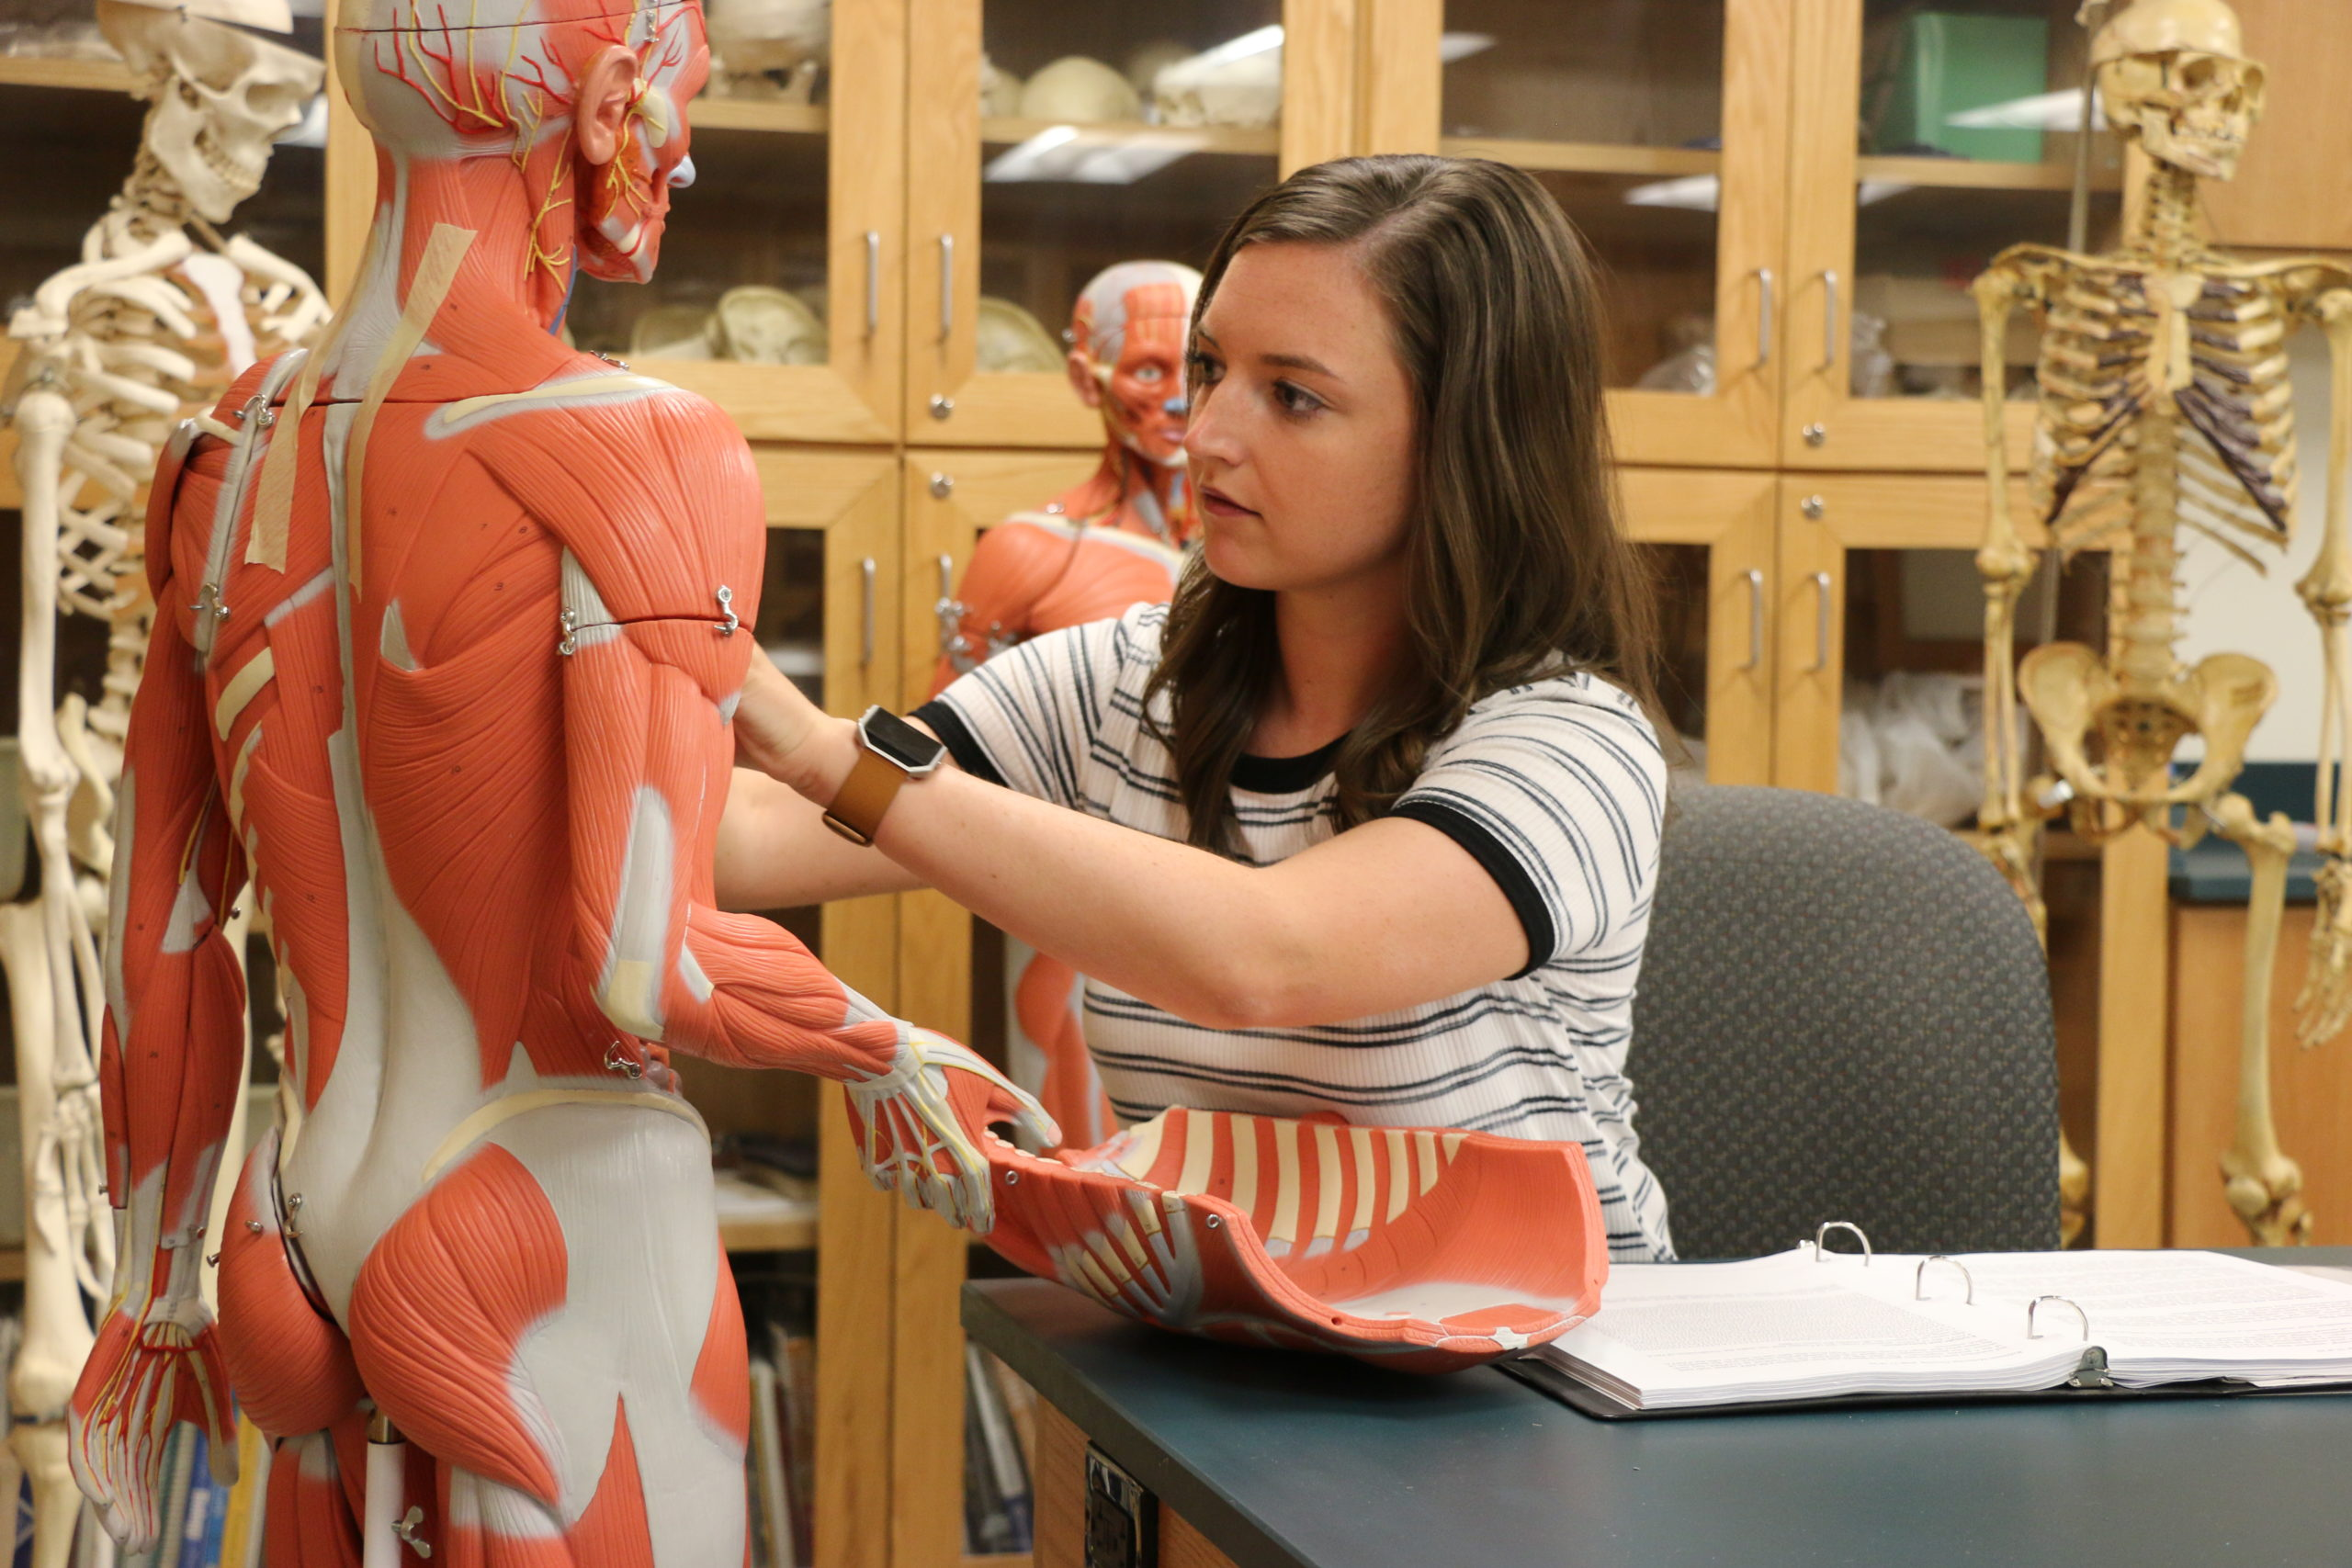 Avila student studying the musculature of a mannequin in the physiology lab